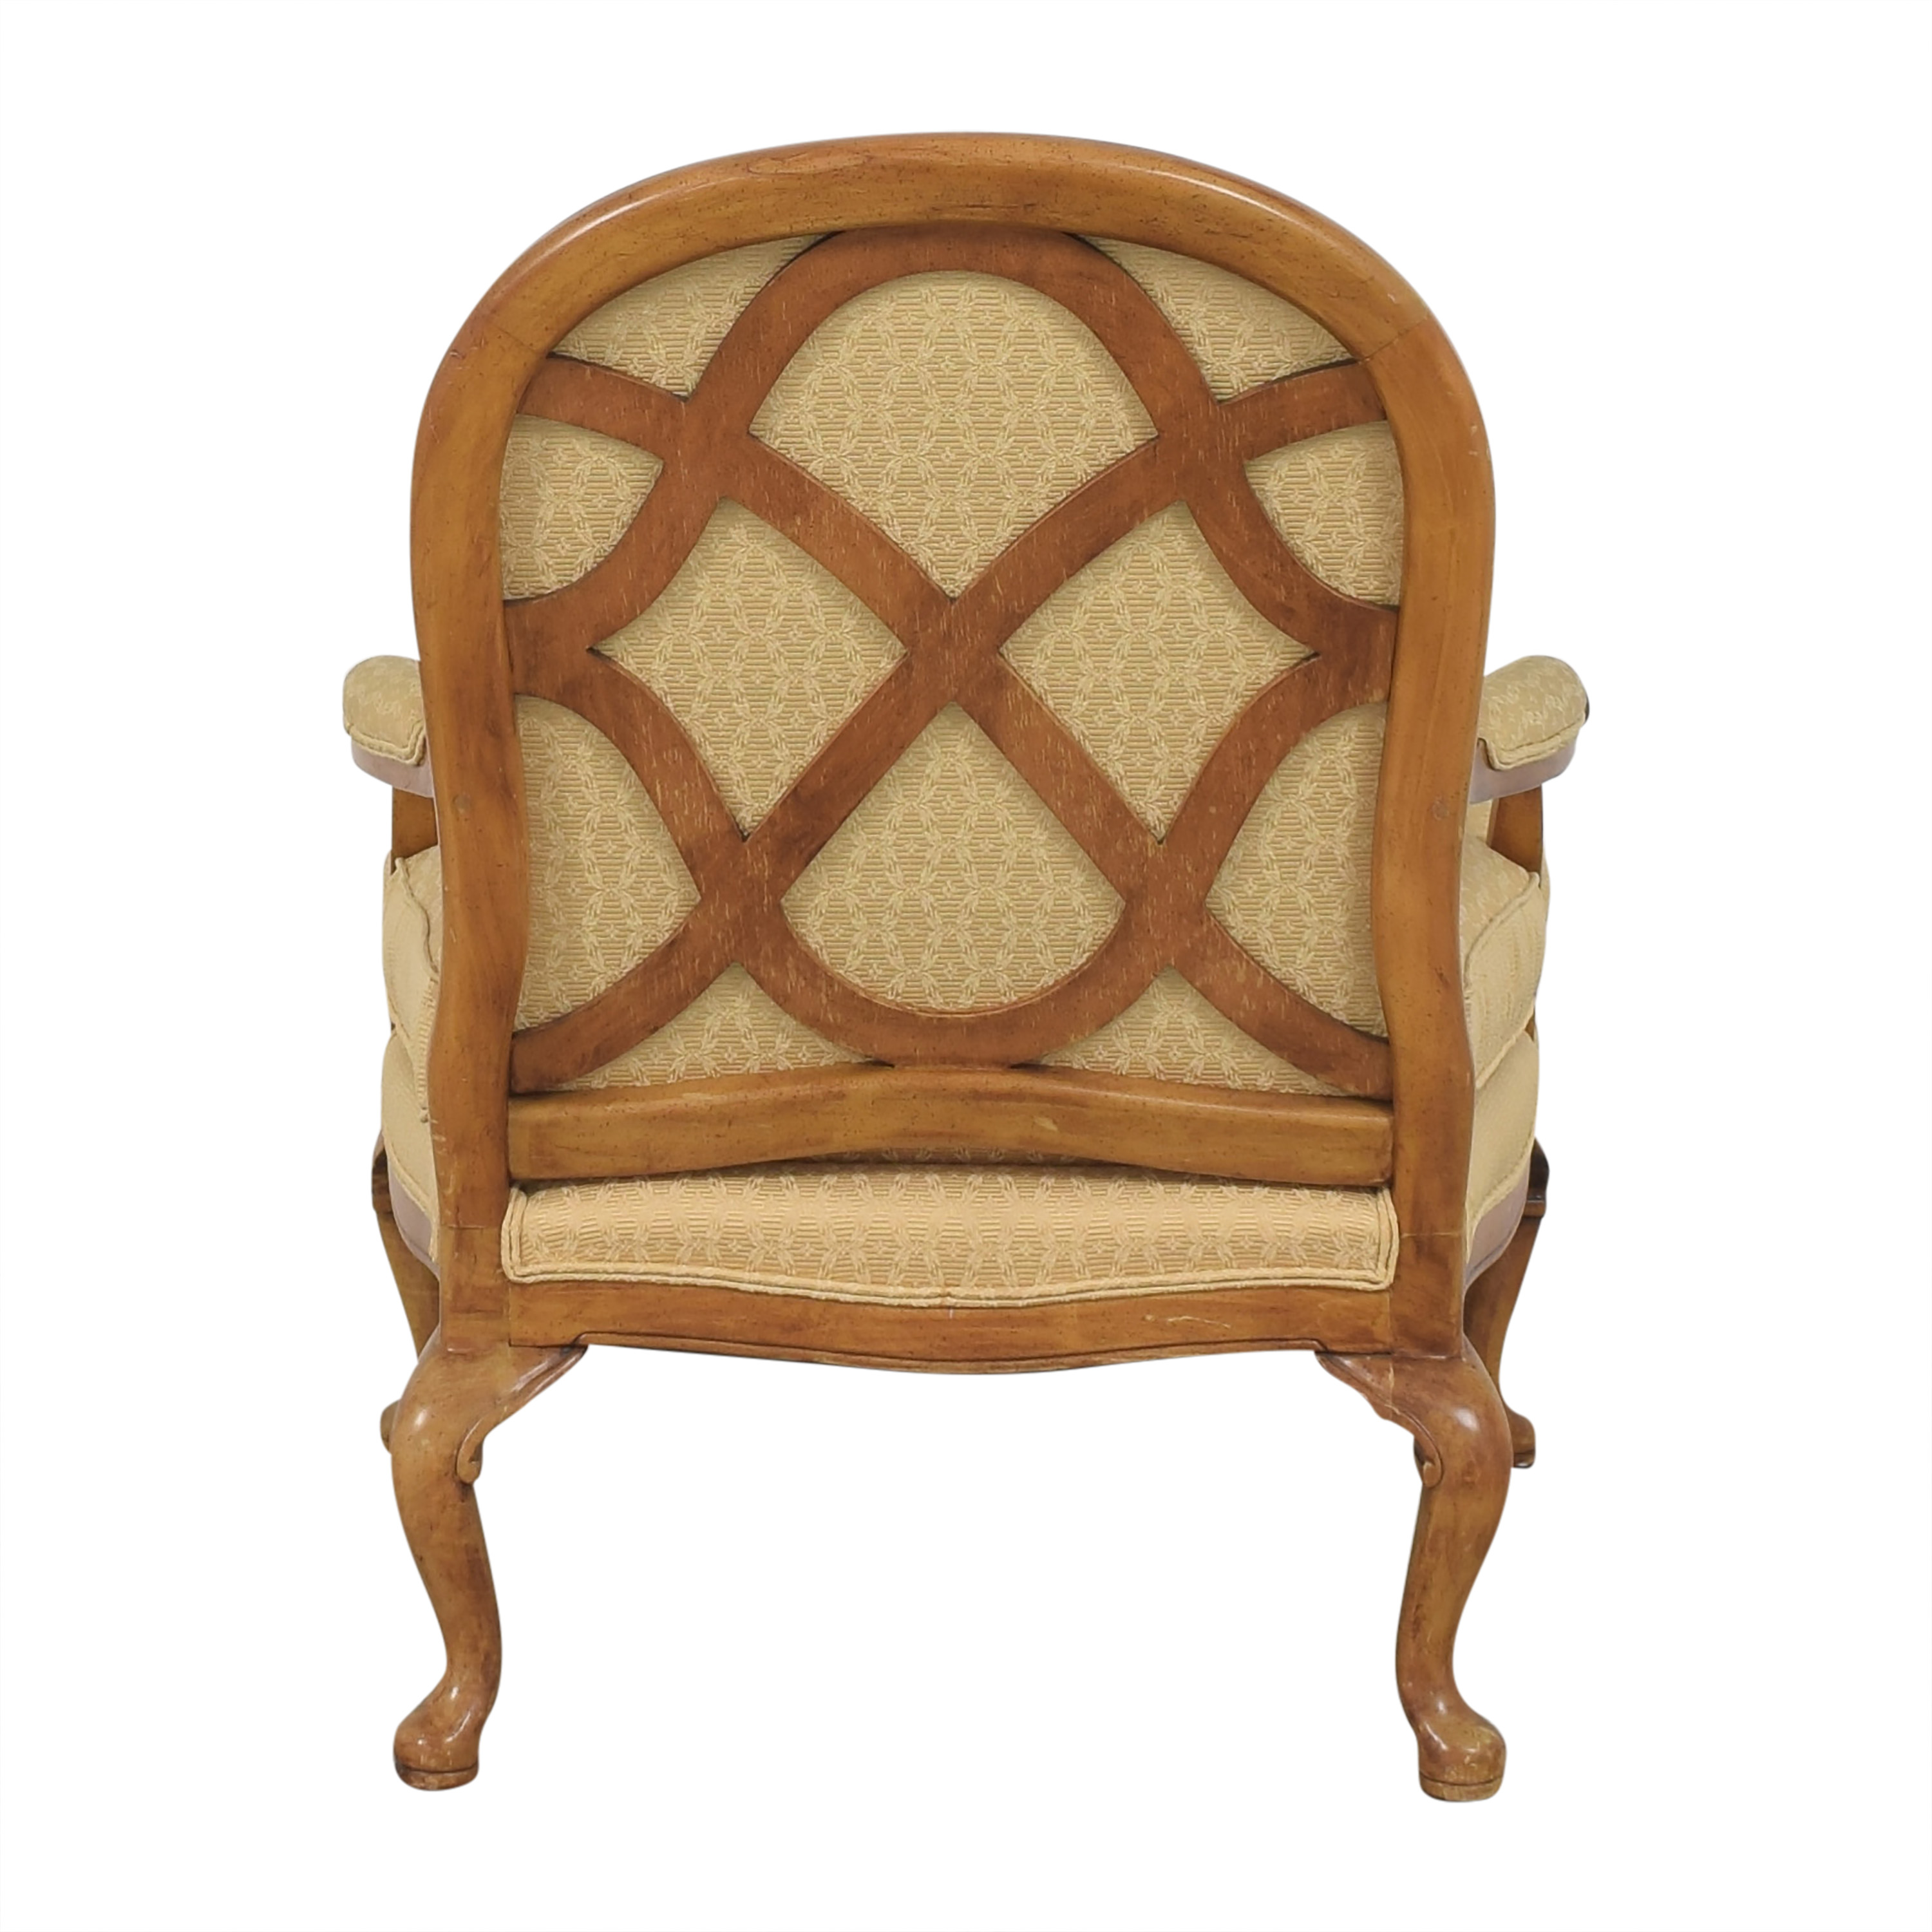 Highland House Furniture Highland House Accent Fauteuil Chair dimensions